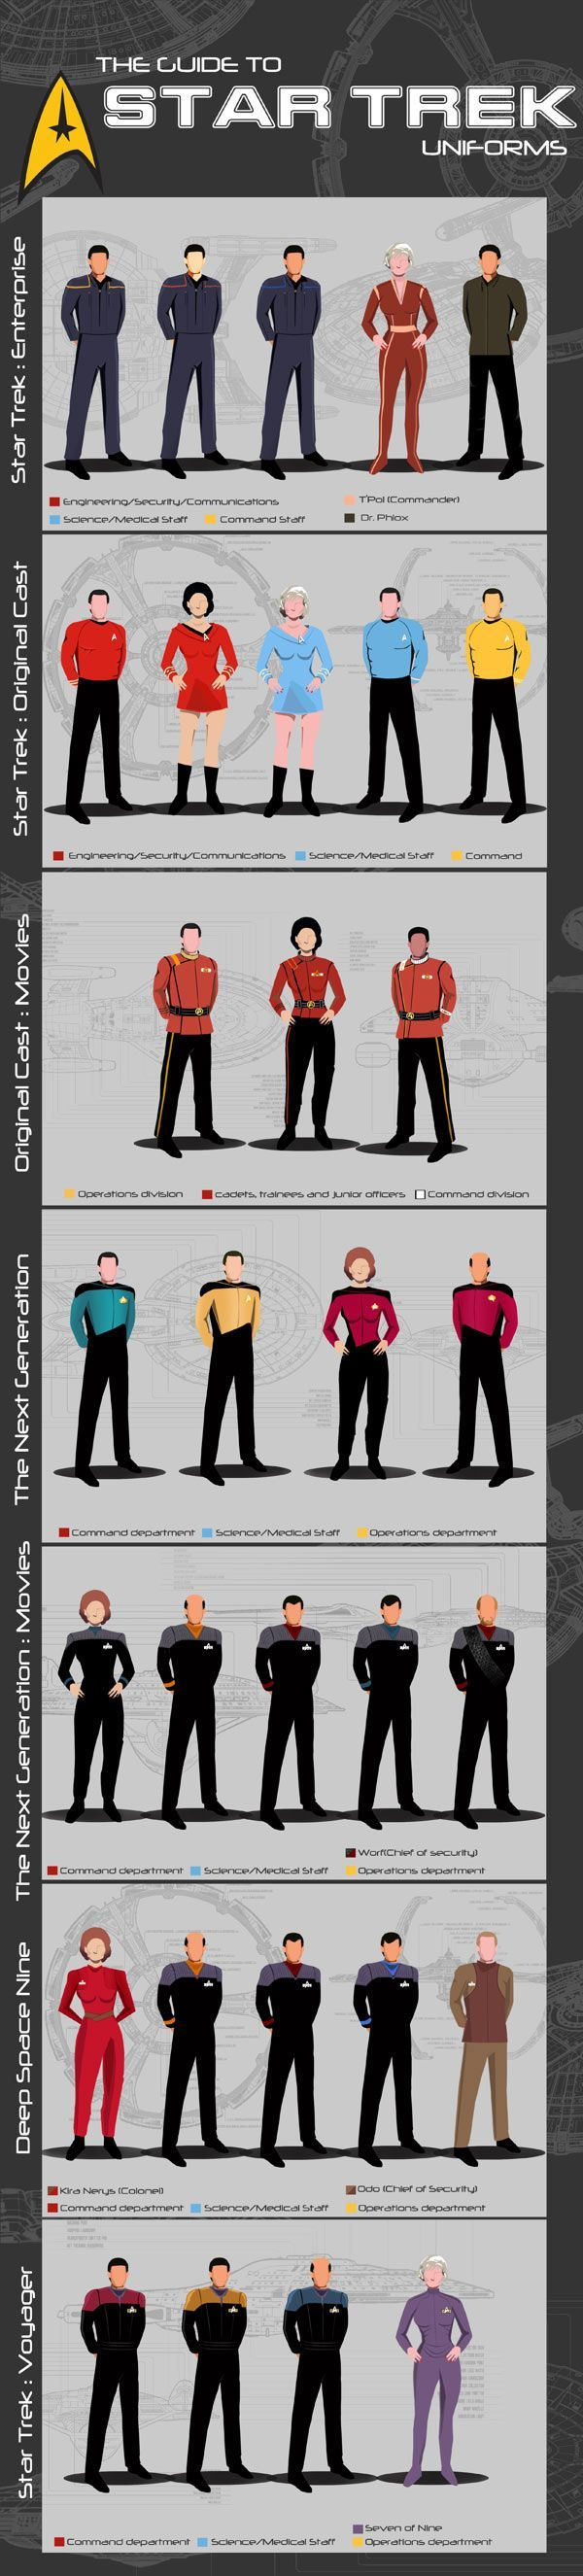 CostumeSupercenter.com created this infographic, just in time for Halloween! (And it's particularly helpful to cosplayers!) [via Geek Girls]